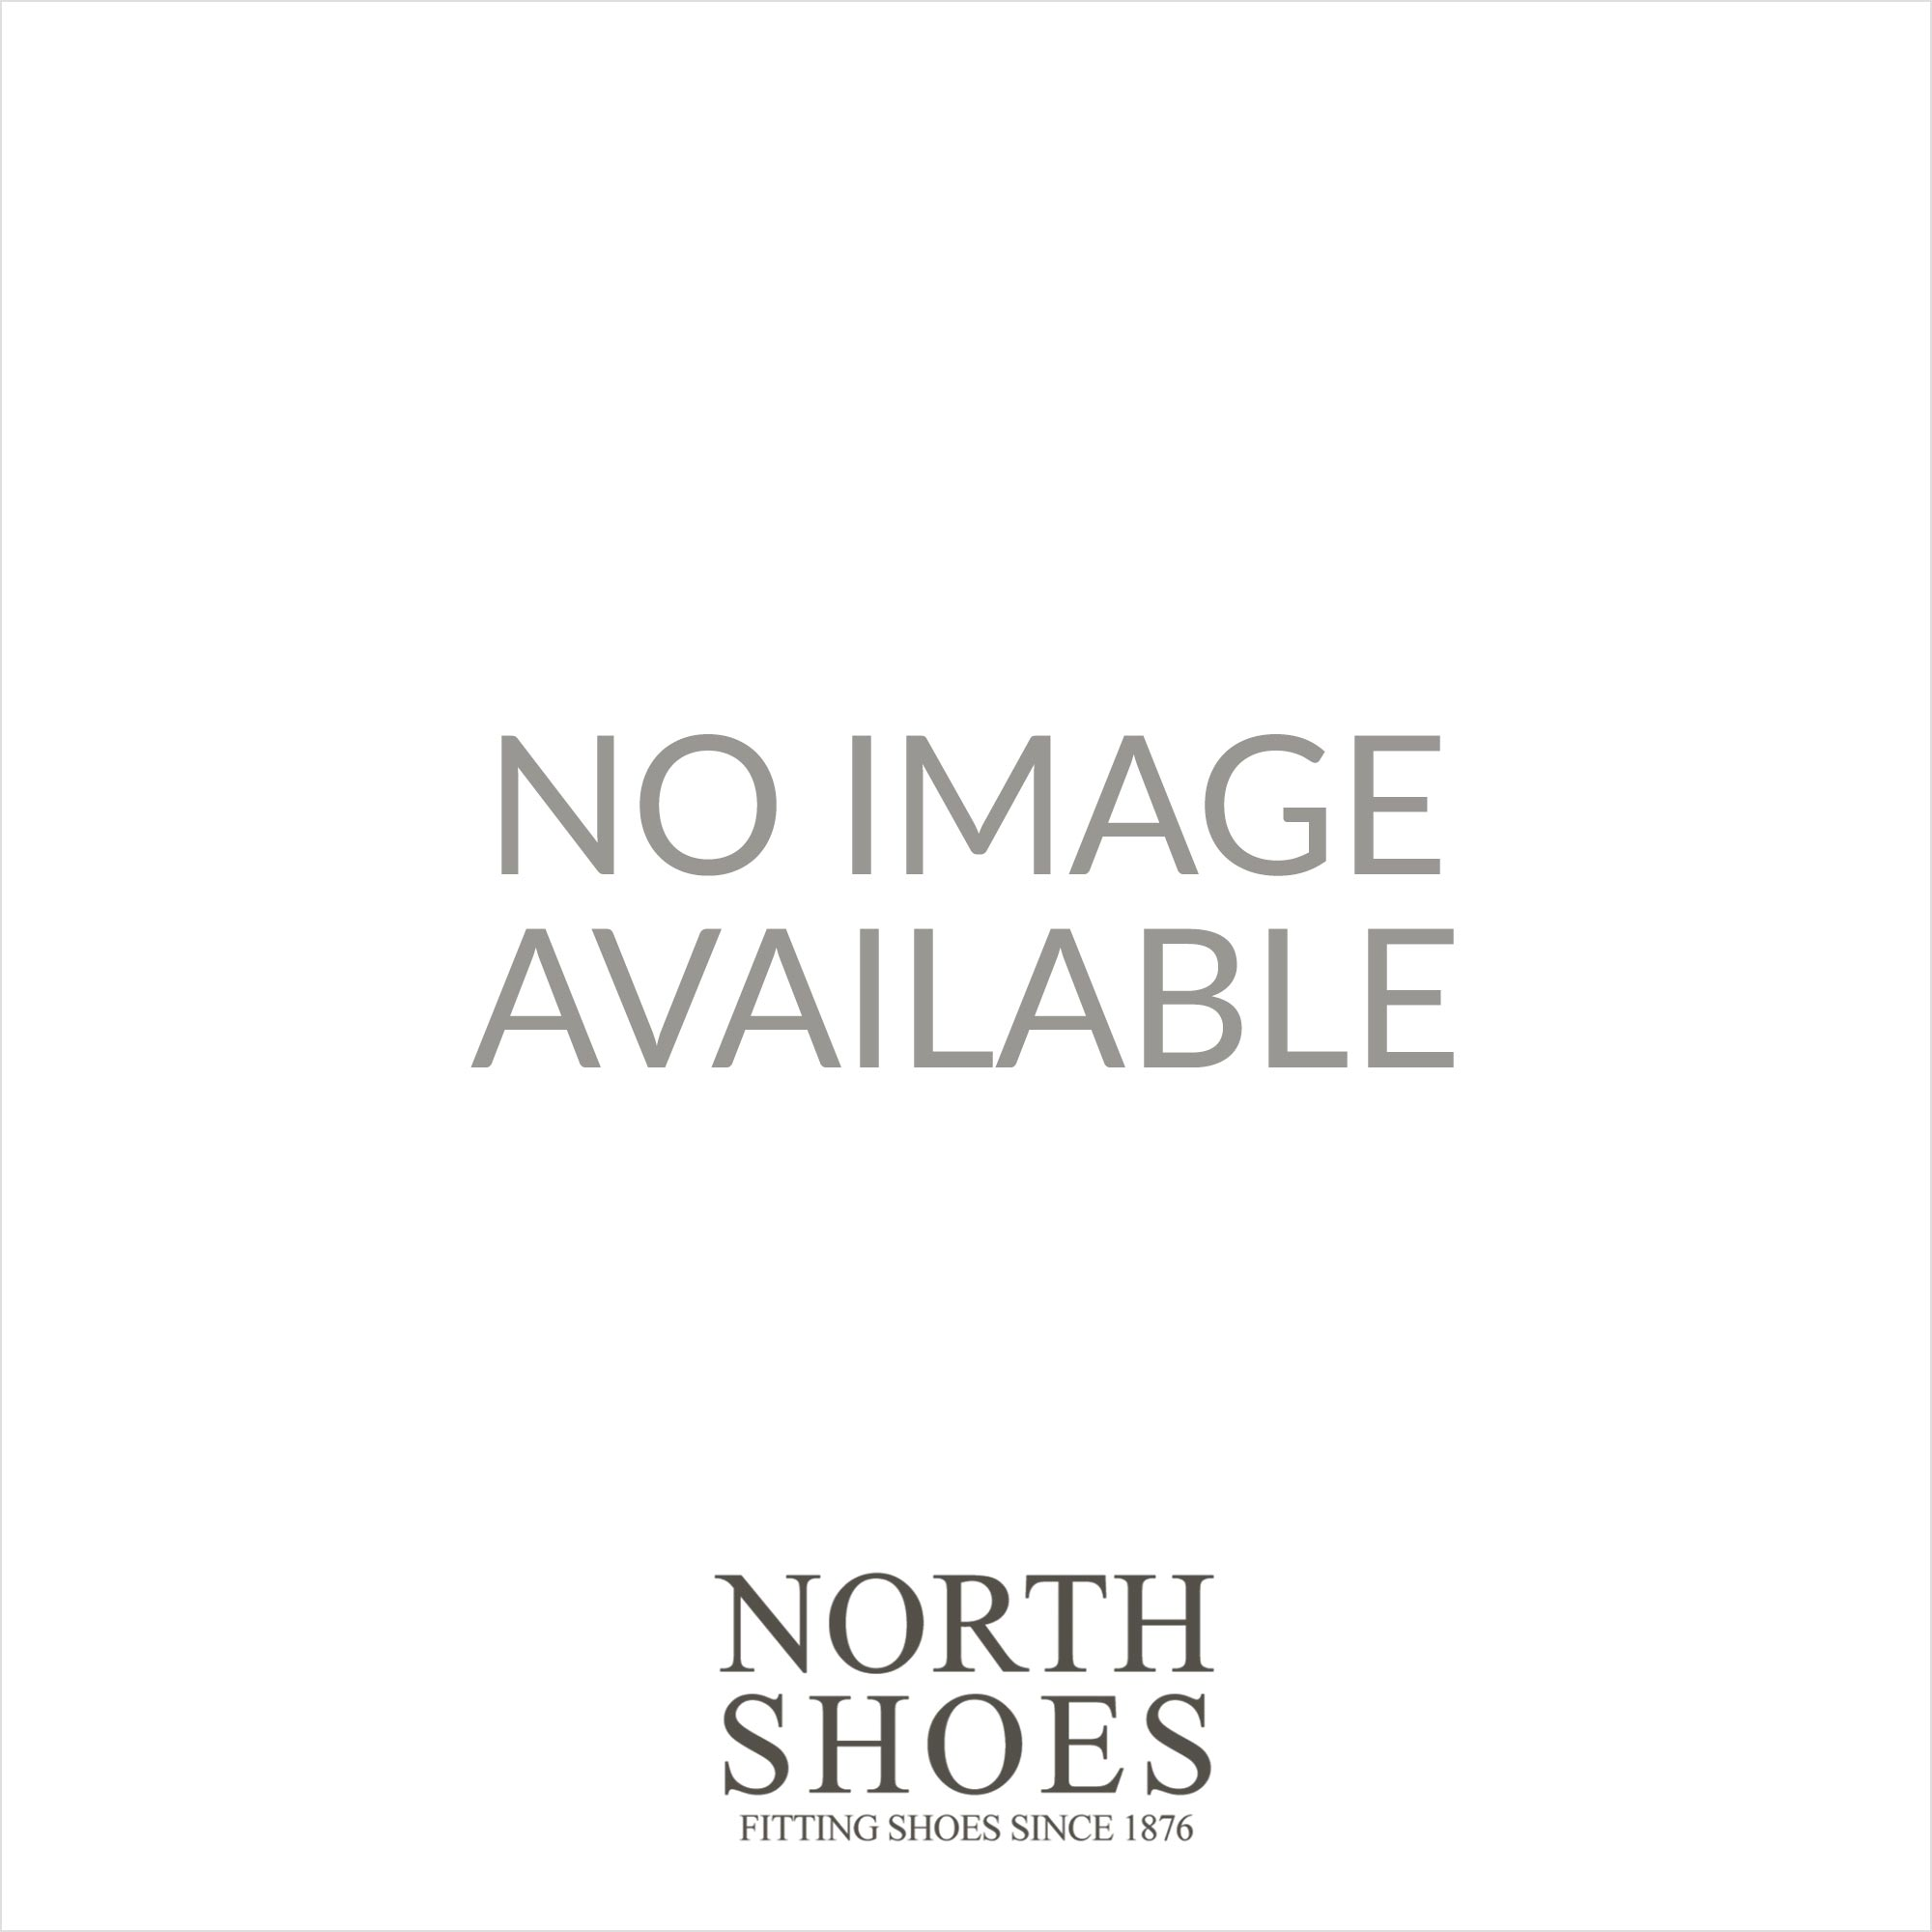 Blue On Slip Dark Leather Freckle Shoes Nubuck Clarks Ice Womens qUwp8w4B